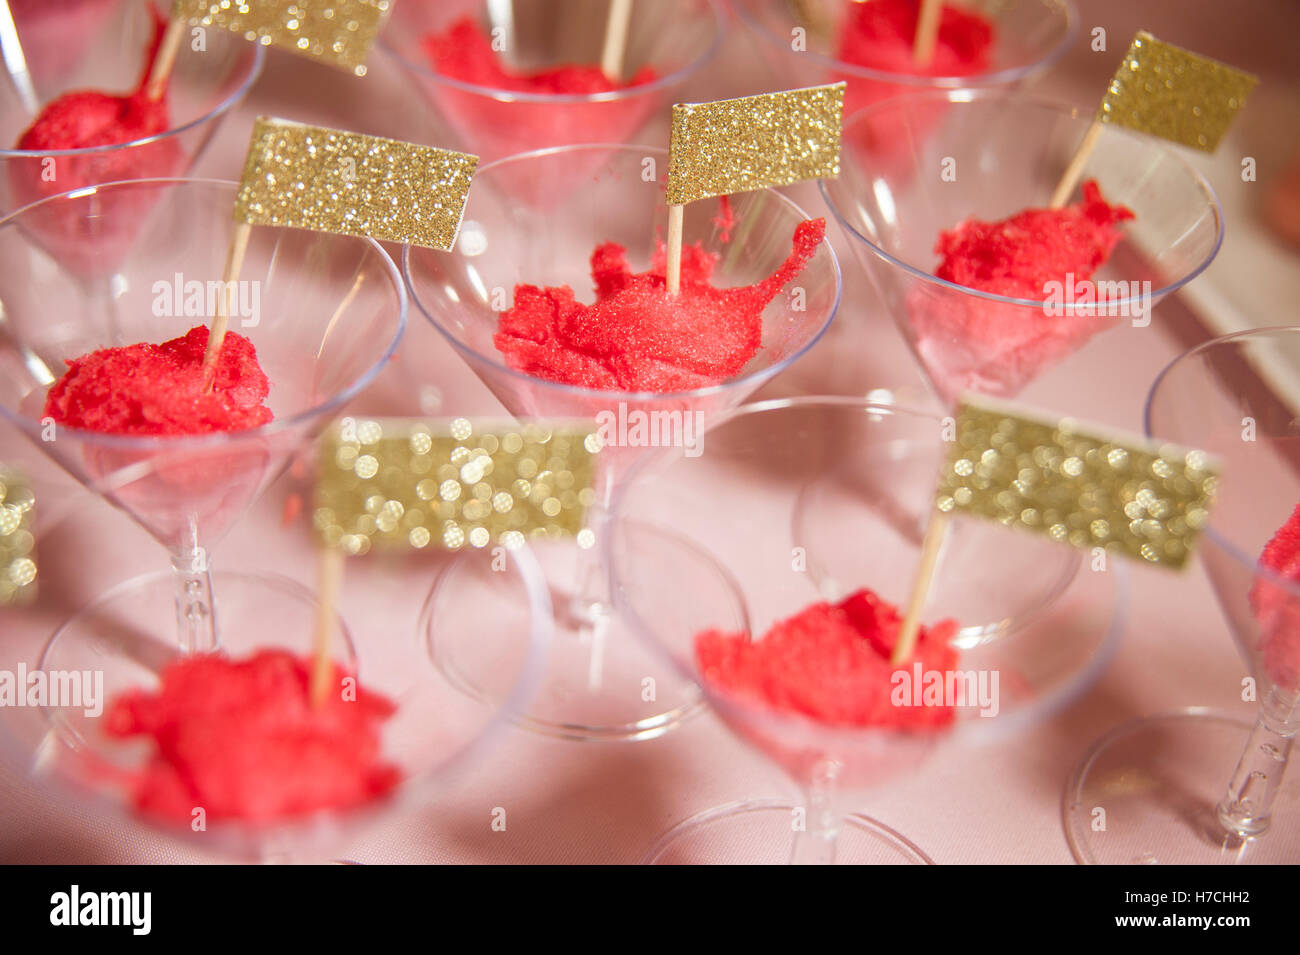 Party Desserts and Birthday Celebration. Sweets for Kids Stock Photo ...